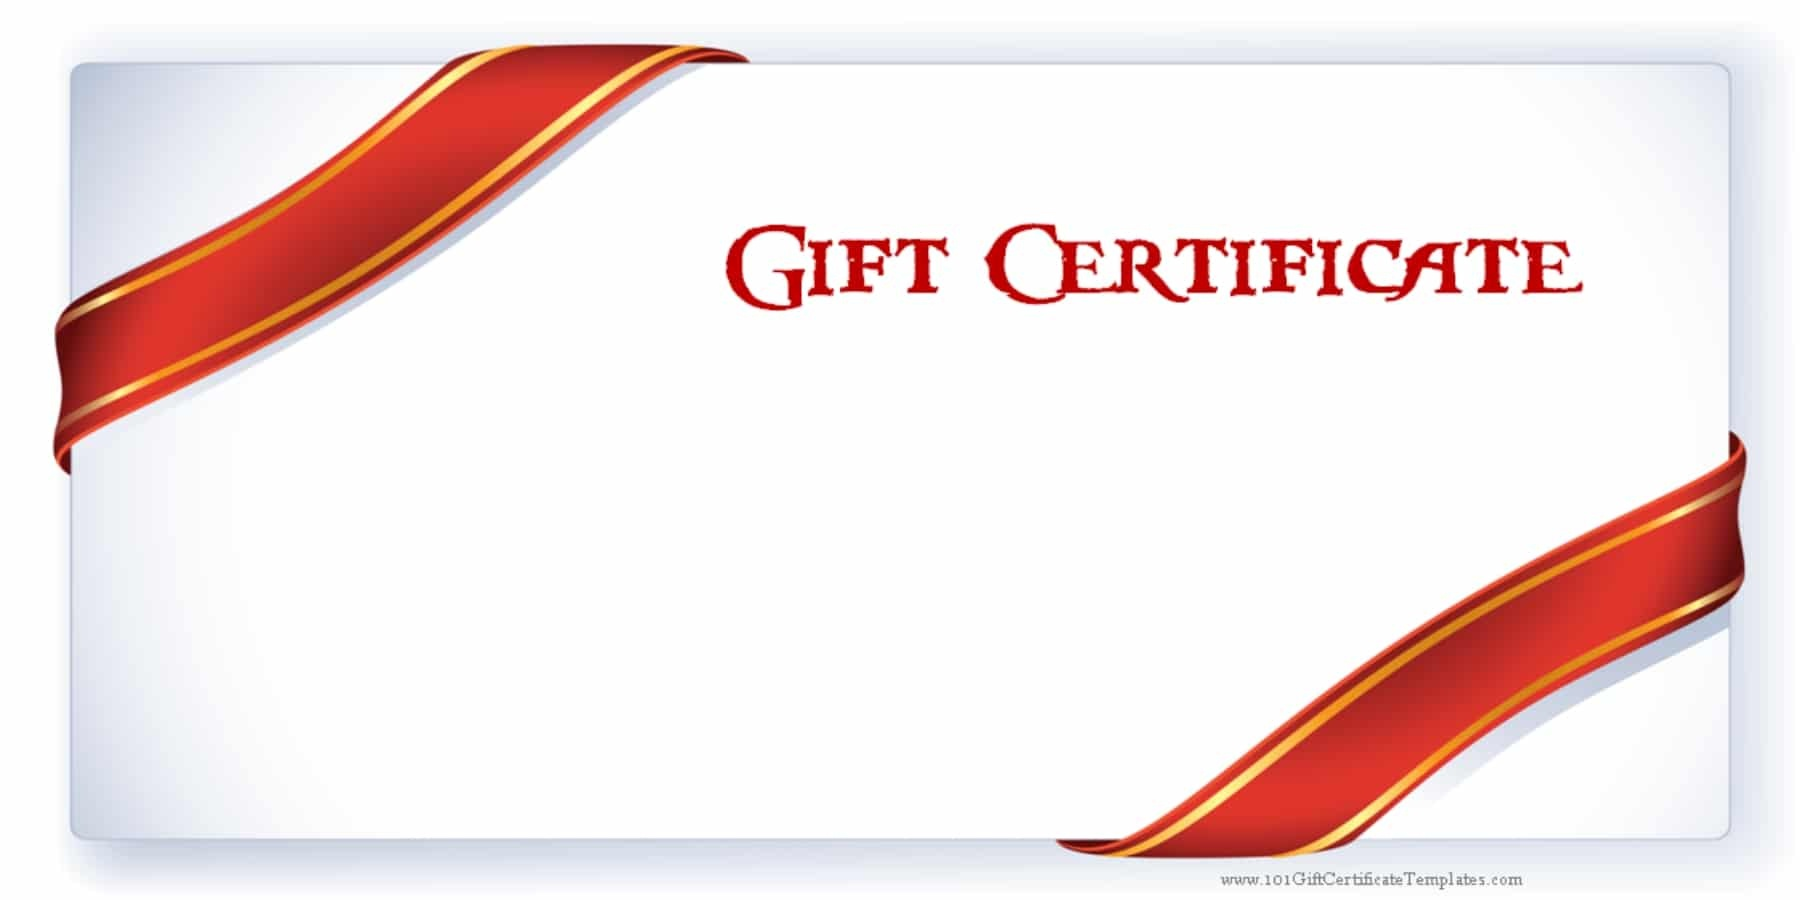 Printable Gift Certificate Templates - Free Printable Gift Vouchers Uk